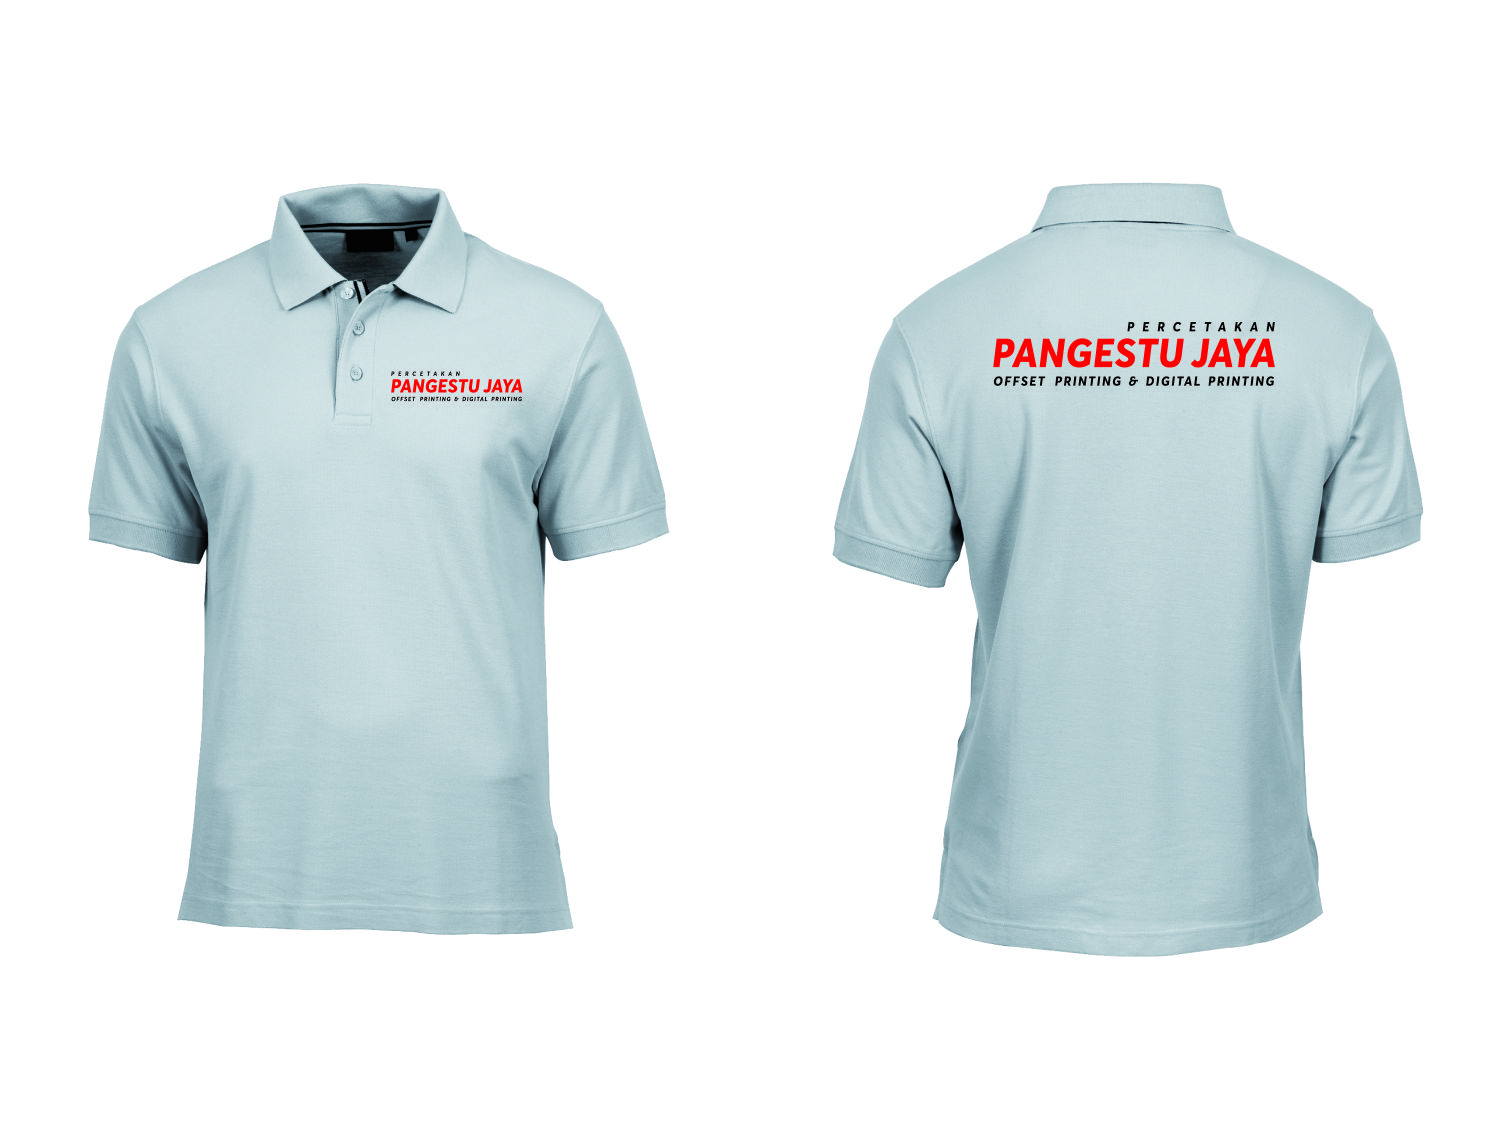 Download Mockup Kaos Polo Format Cdr Png Hd Dodo Grafis